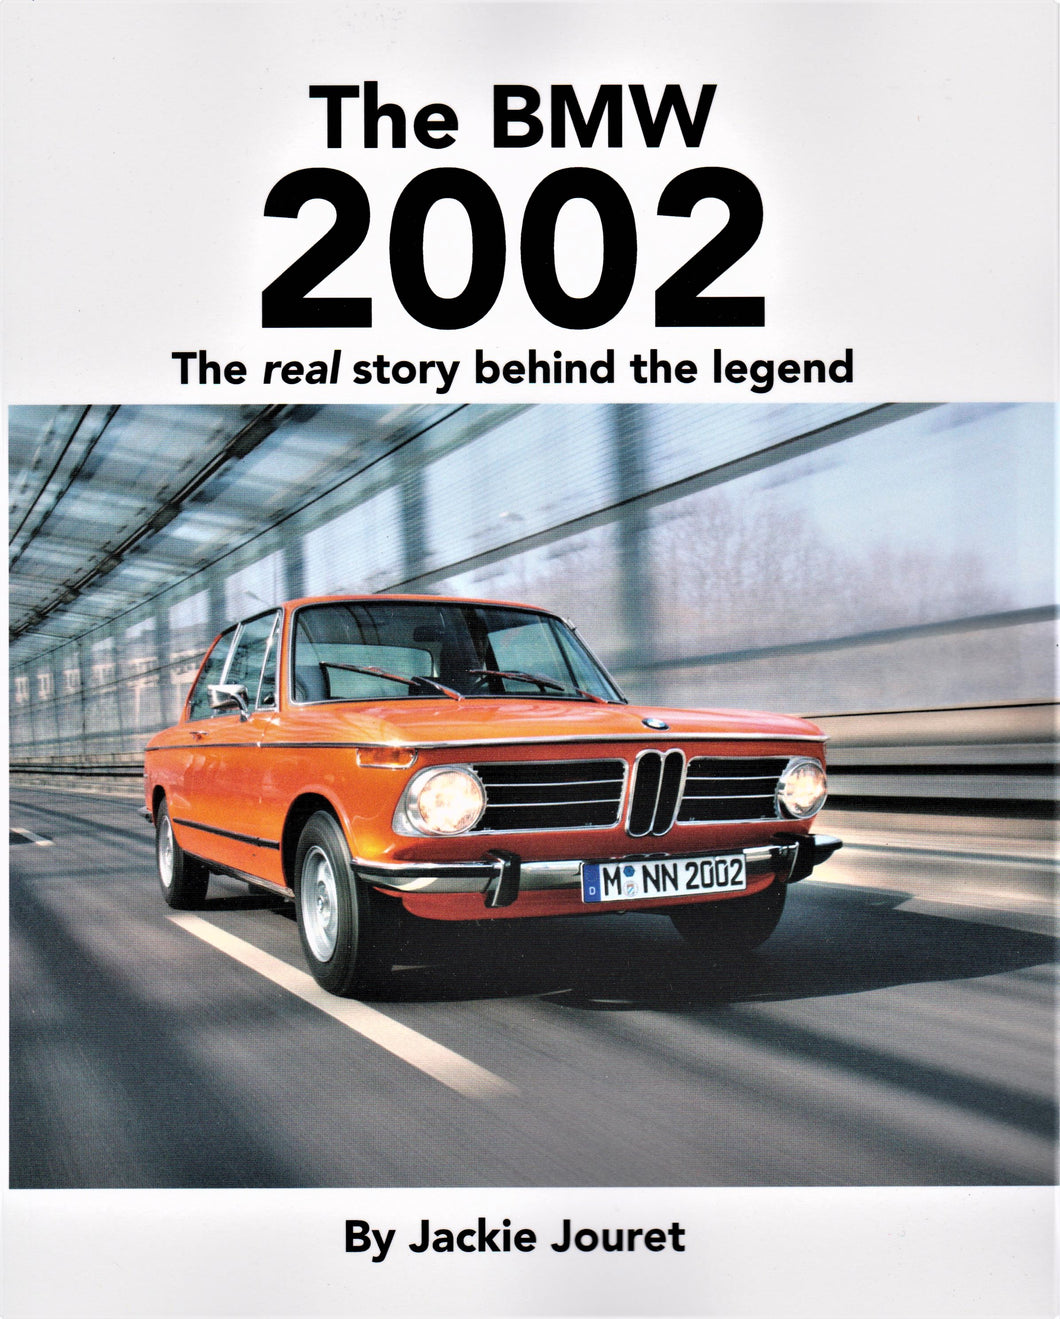 Book - The BMW 2002 The real story behind the legend